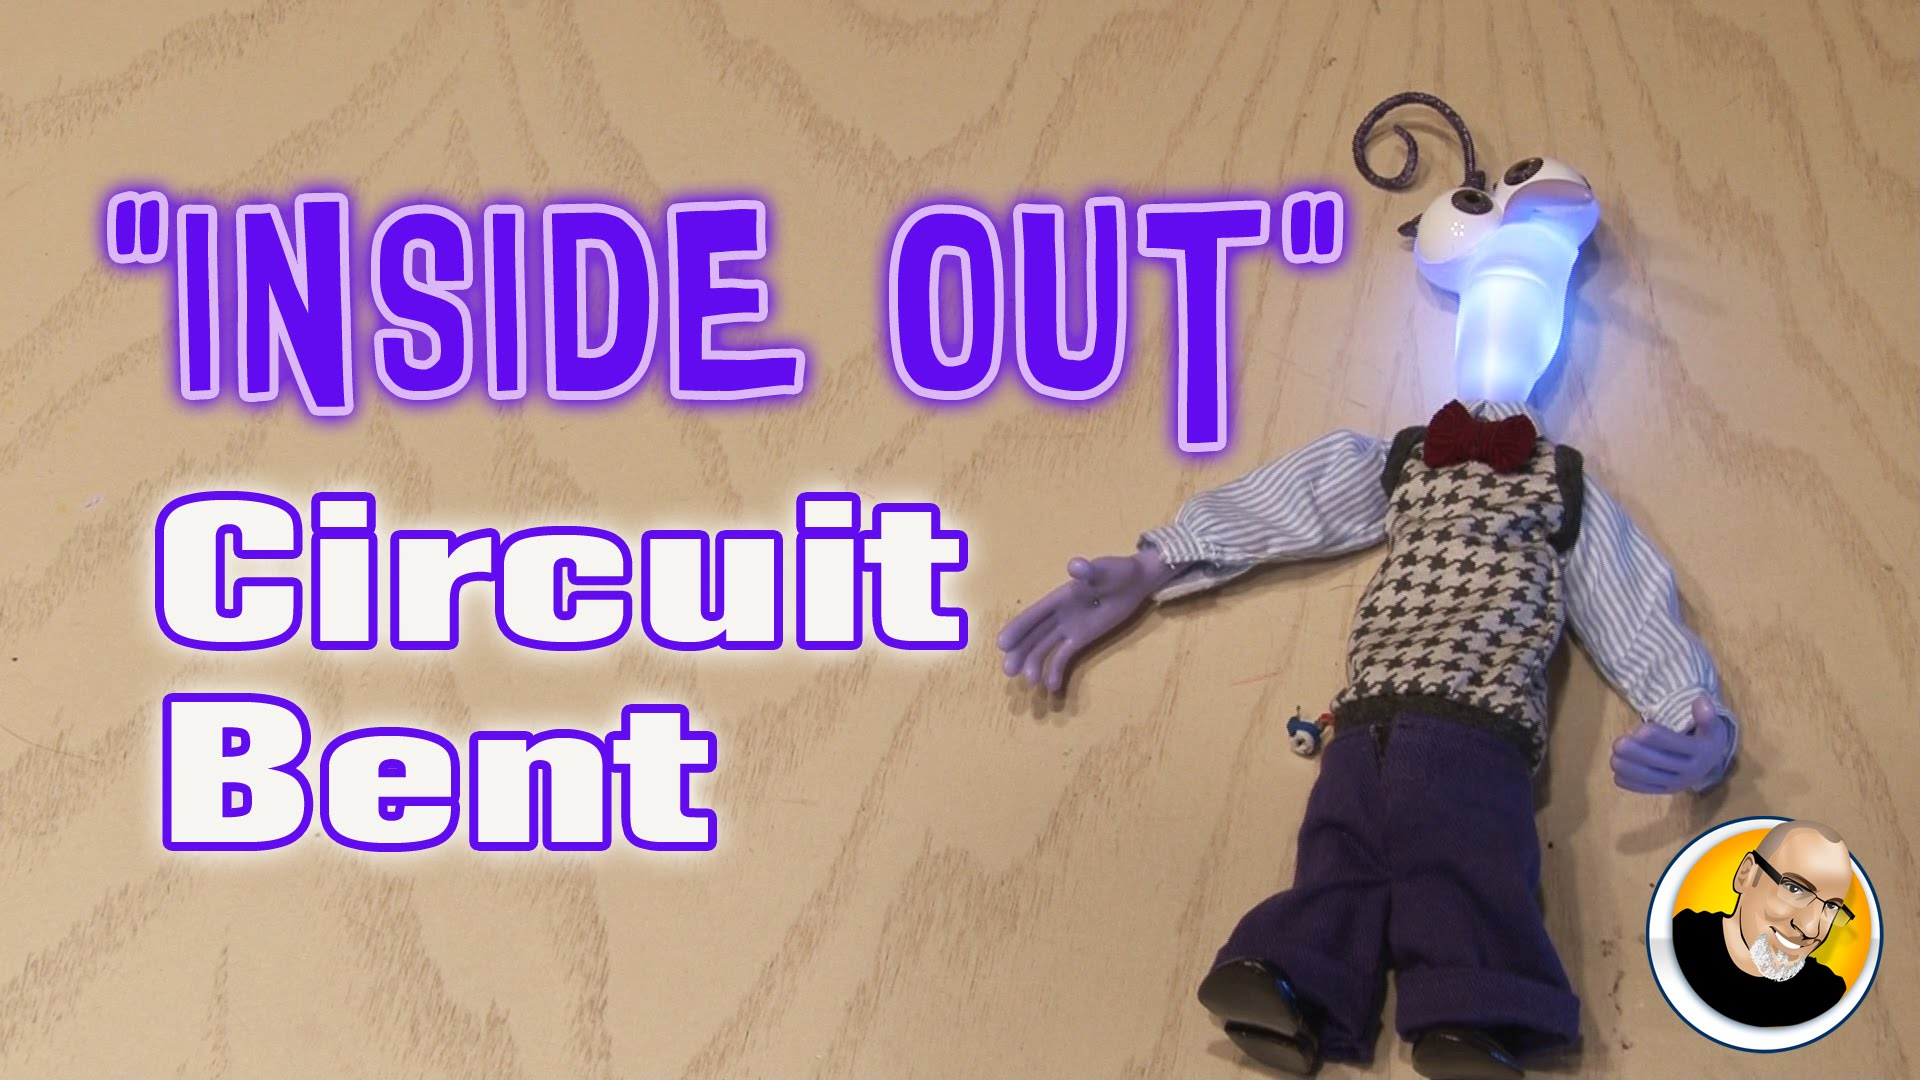 Kipkay Videos Homepage Part 3 Simple Ways To Circuit Bend A Toy Bending Pinterest Inside Out Bent